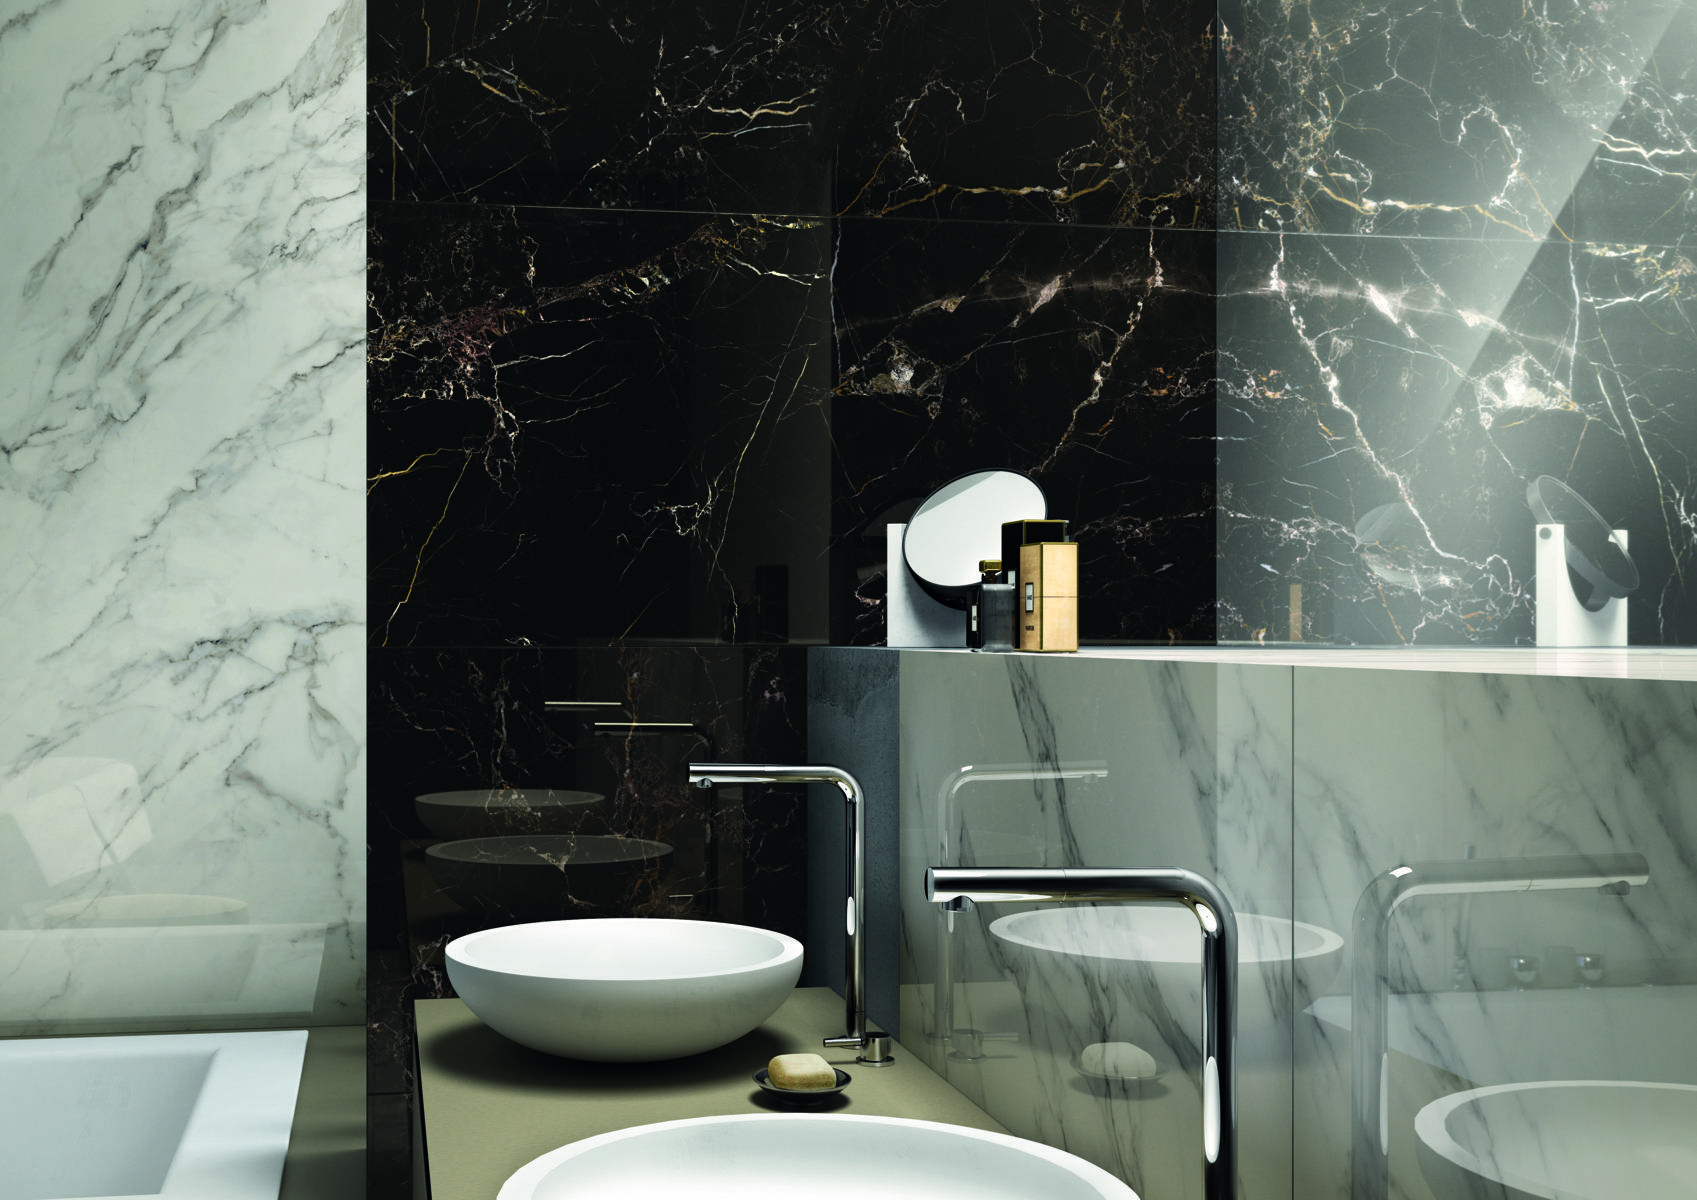 Bathroom Surfaces In Anima Select Porcelain Stoneware Ceramic Tiles